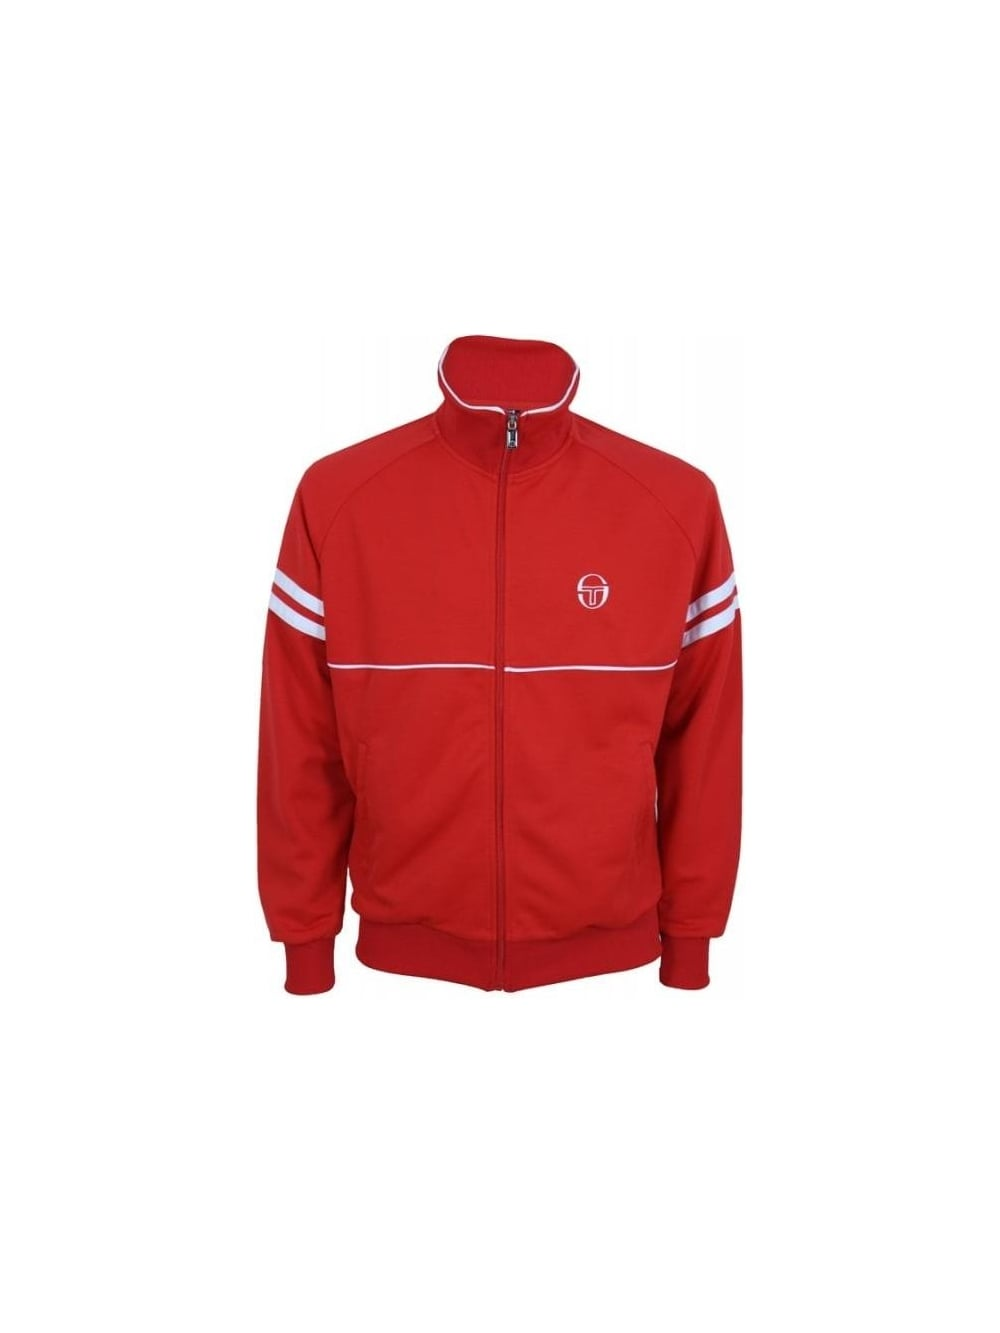 8777c55c Sergio Tacchini Nord Star Track Top in Flame - Northern Threads